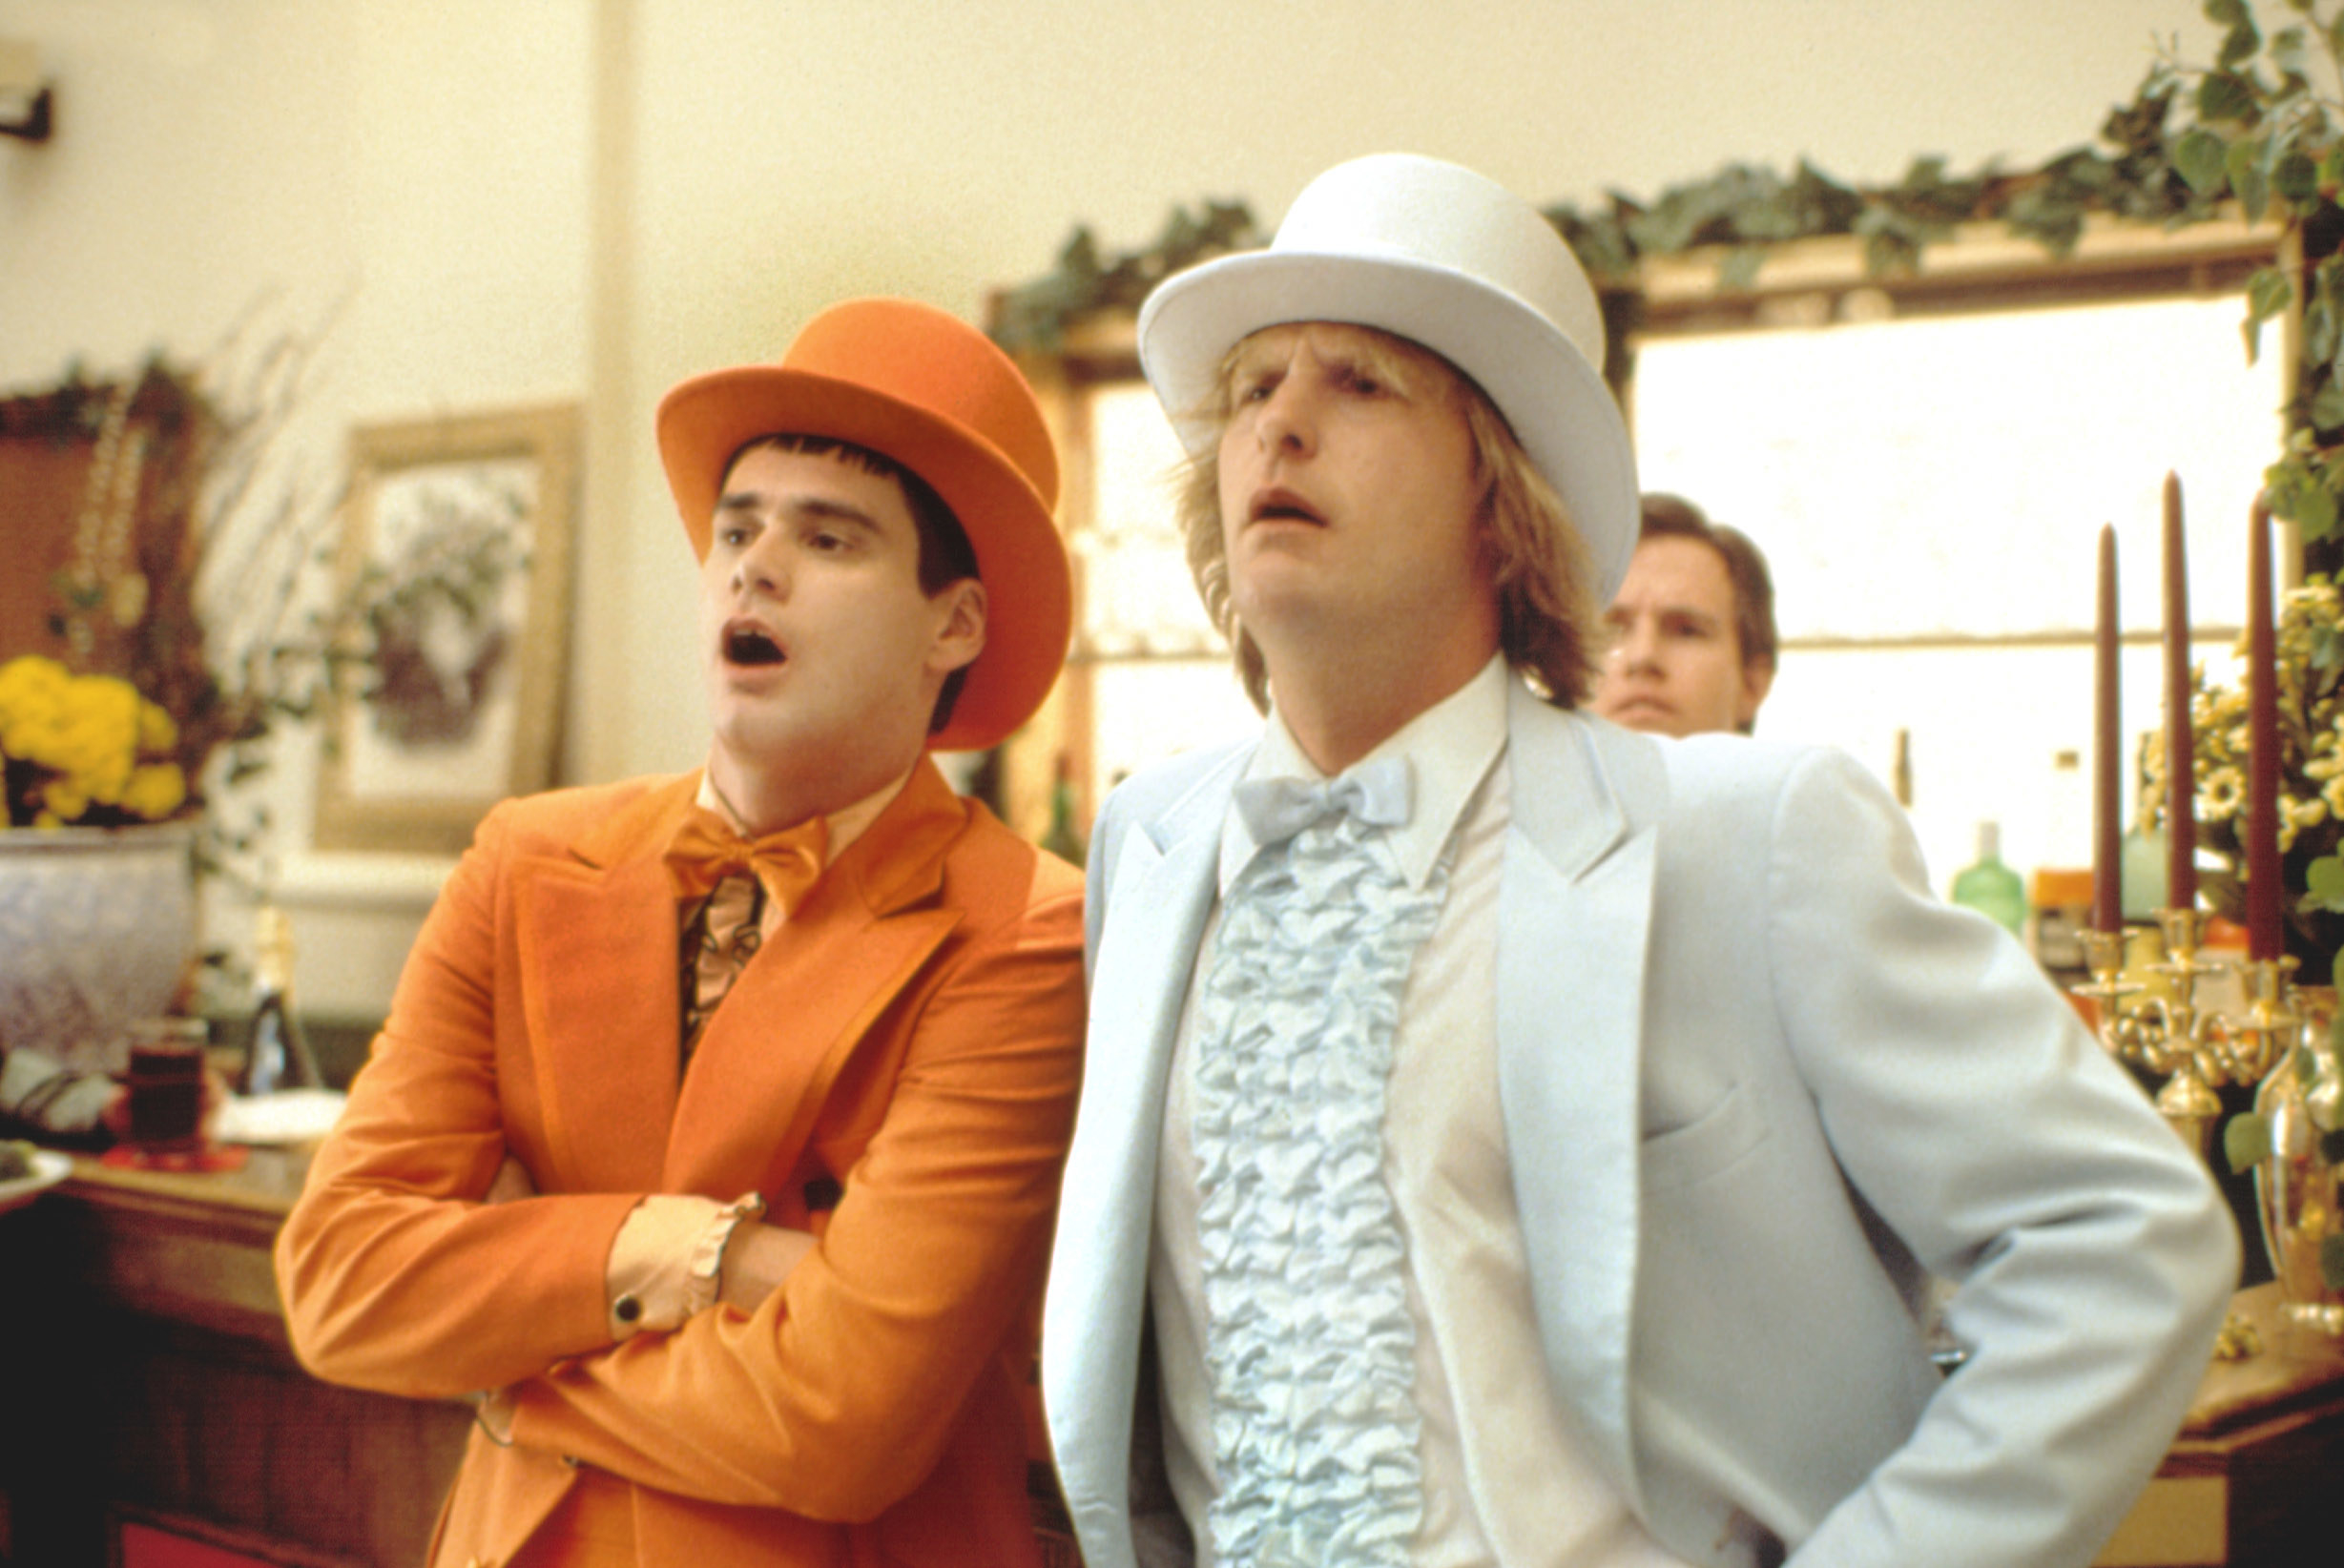 Jim Carrey and Jeff Daniels looking great in their suits